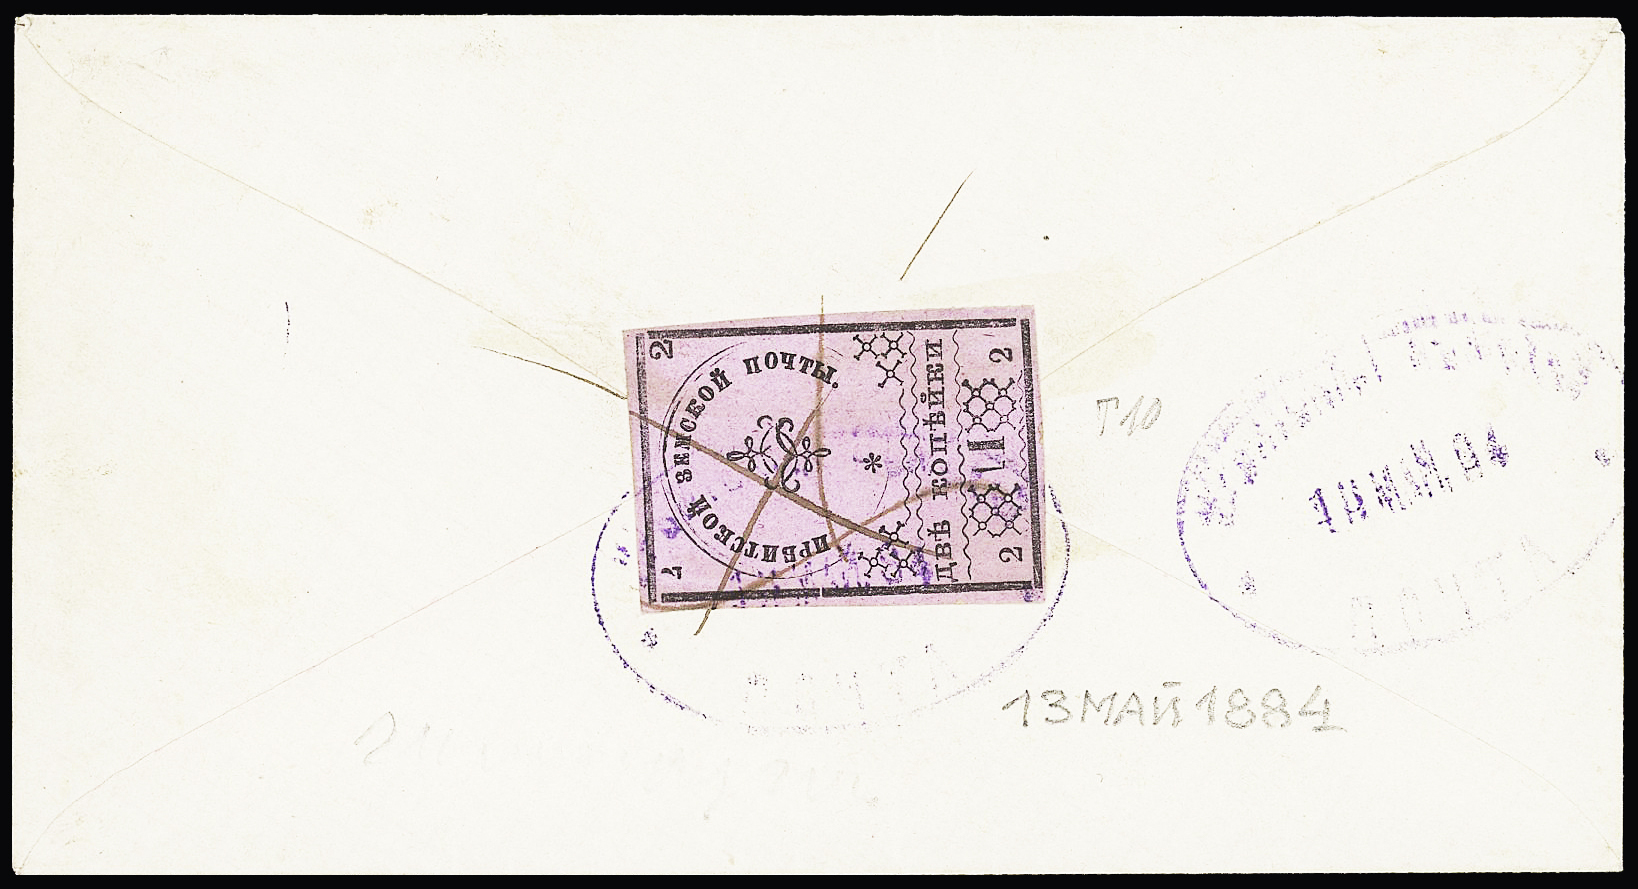 Lot 455 - Eastern Europe » RUSSIA - ZEMSTVOS » Irbit (Perm Government)  -  Le Timbre Classique SA SALE ON OFFERS N ° 37 PARIS